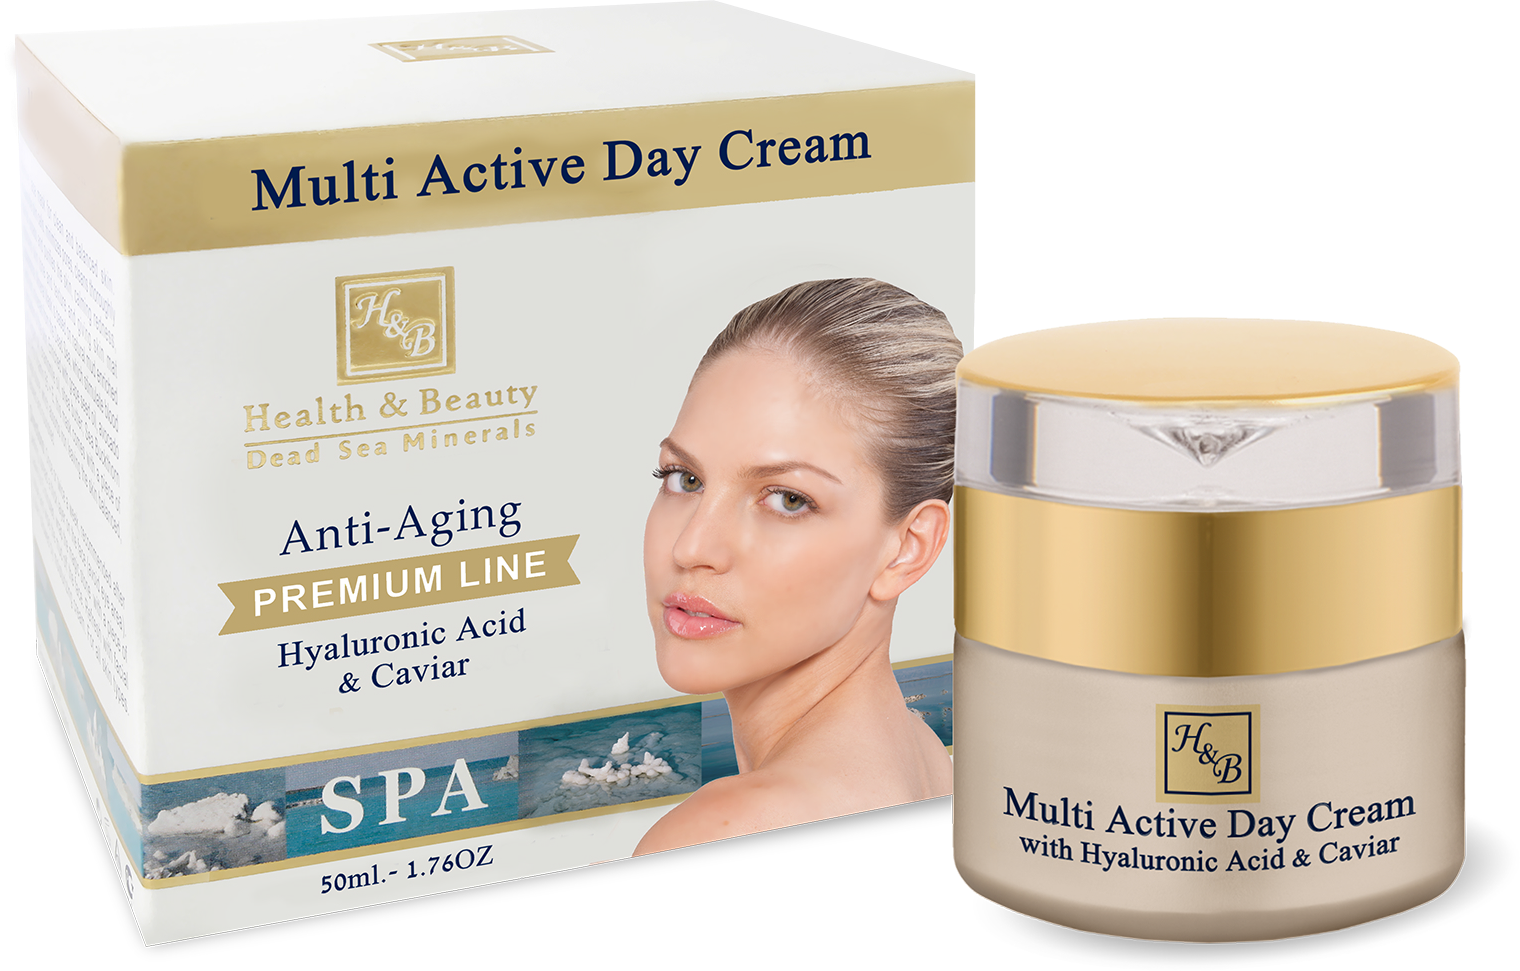 Multi-Active Day Cream with Hyaluronic